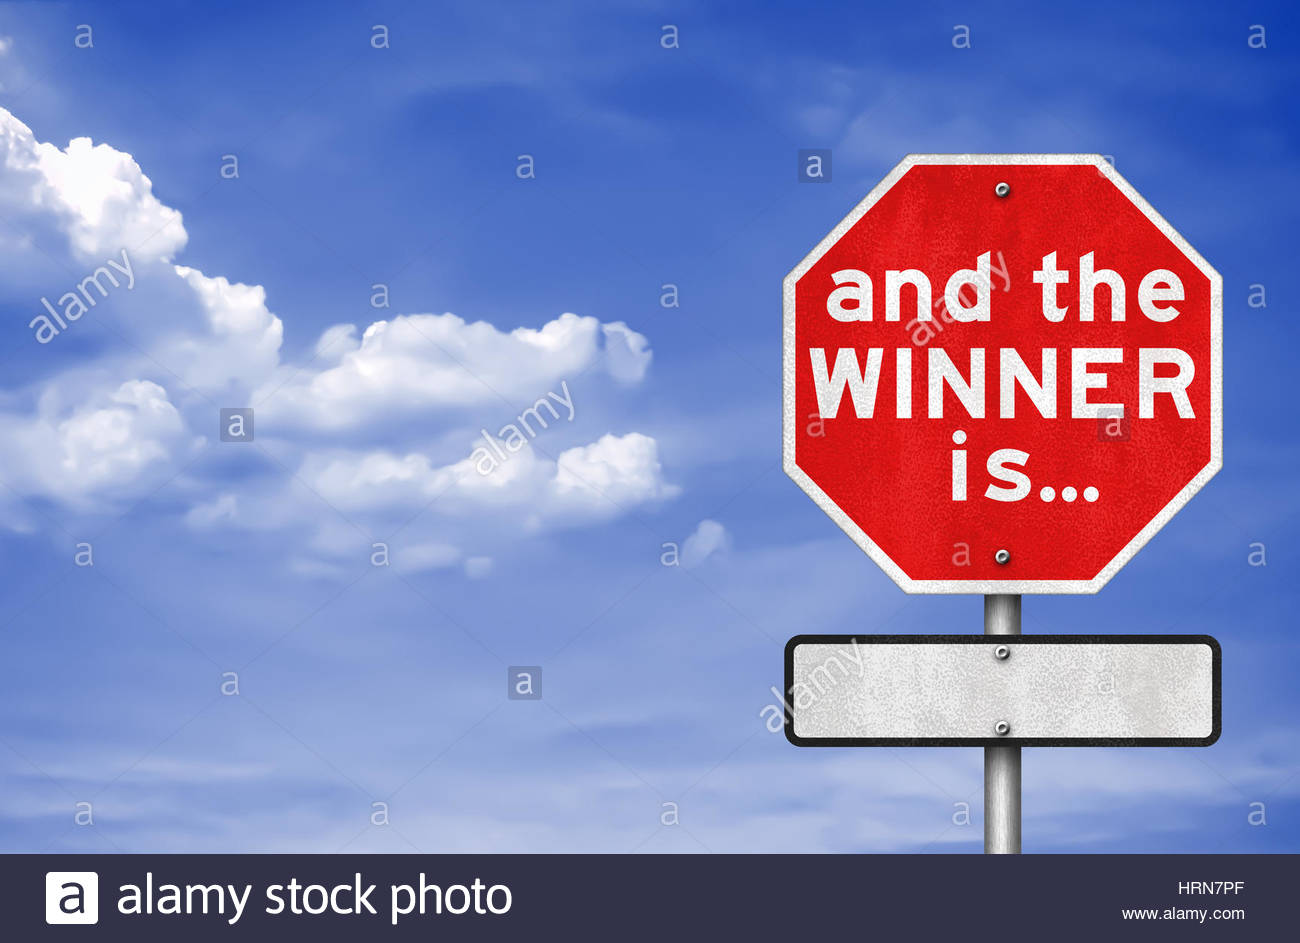 and the WINNER is - road sign concept - Stock Image